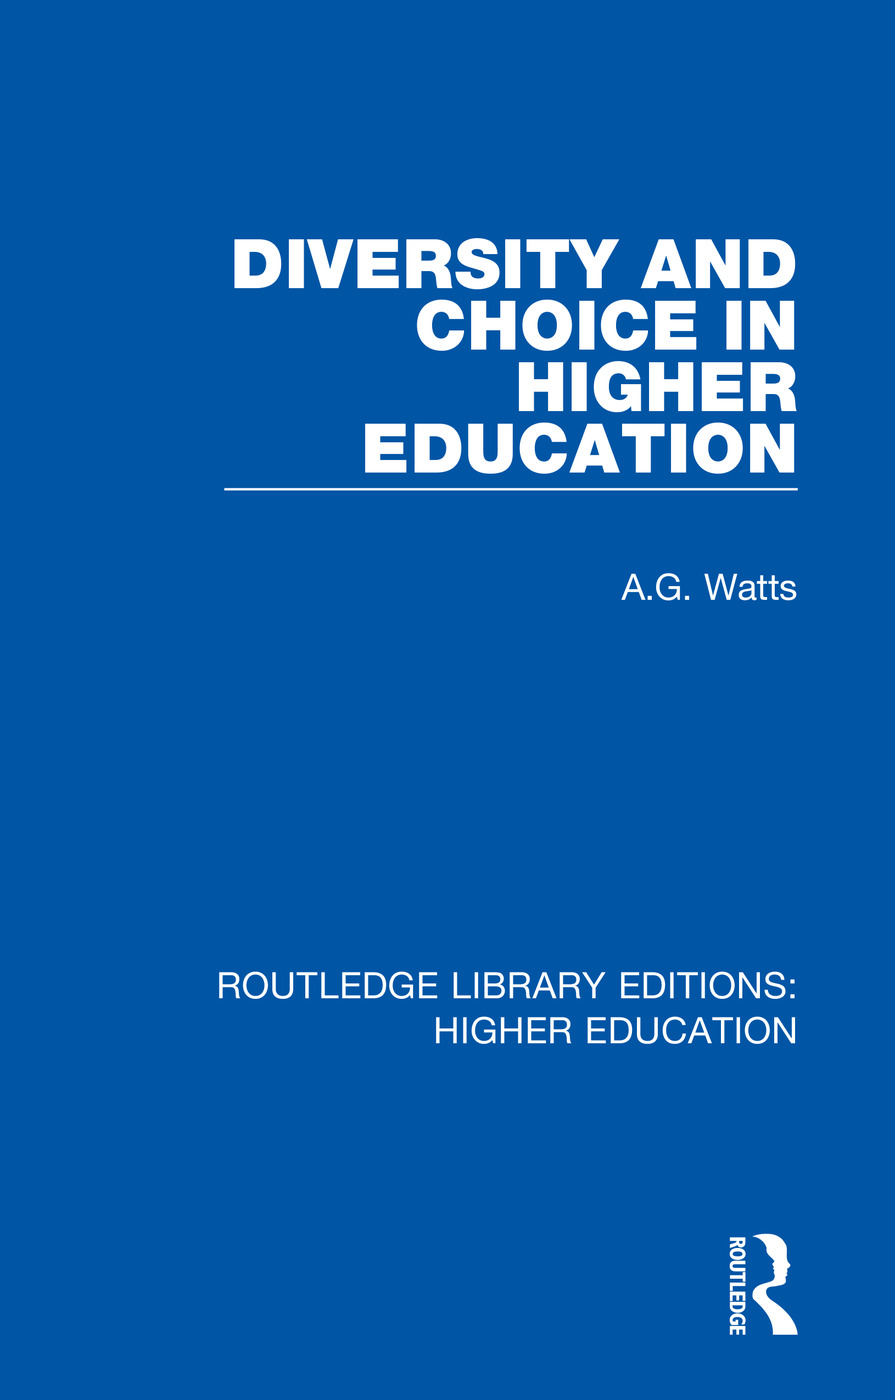 Diversity and Choice in Higher Education